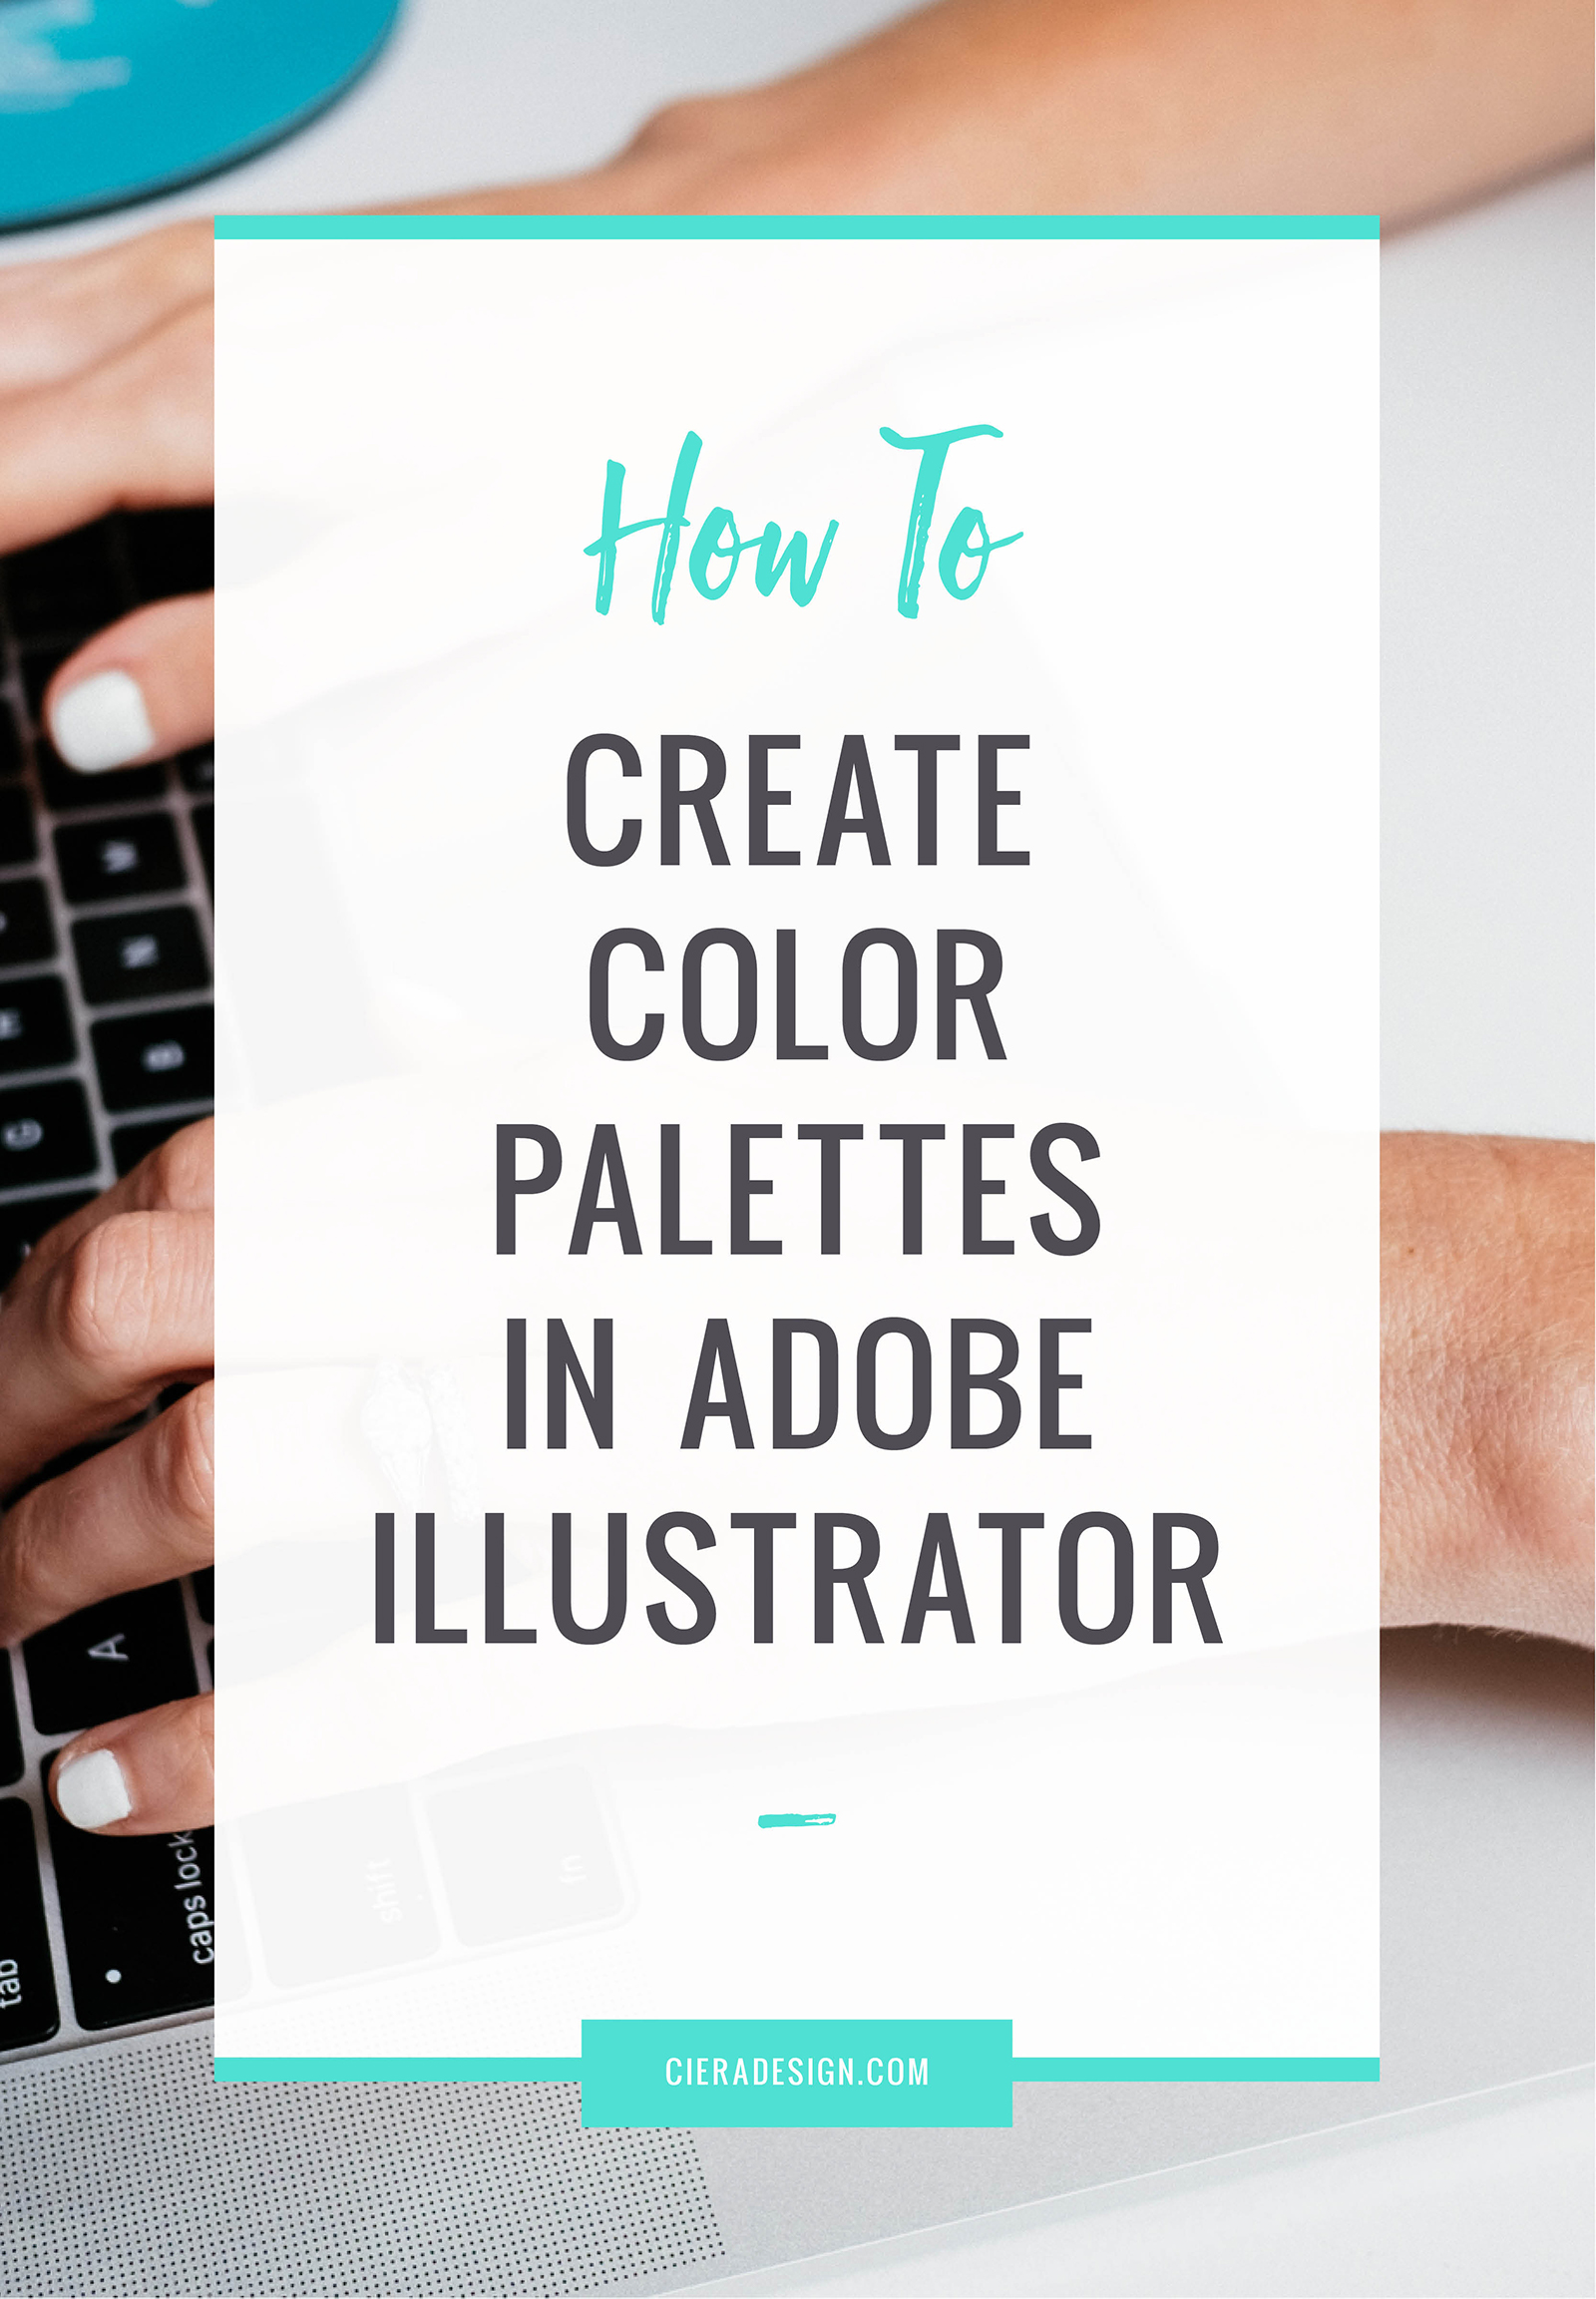 Here are three essential tips for working with color palettes in Adobe Illustrator.